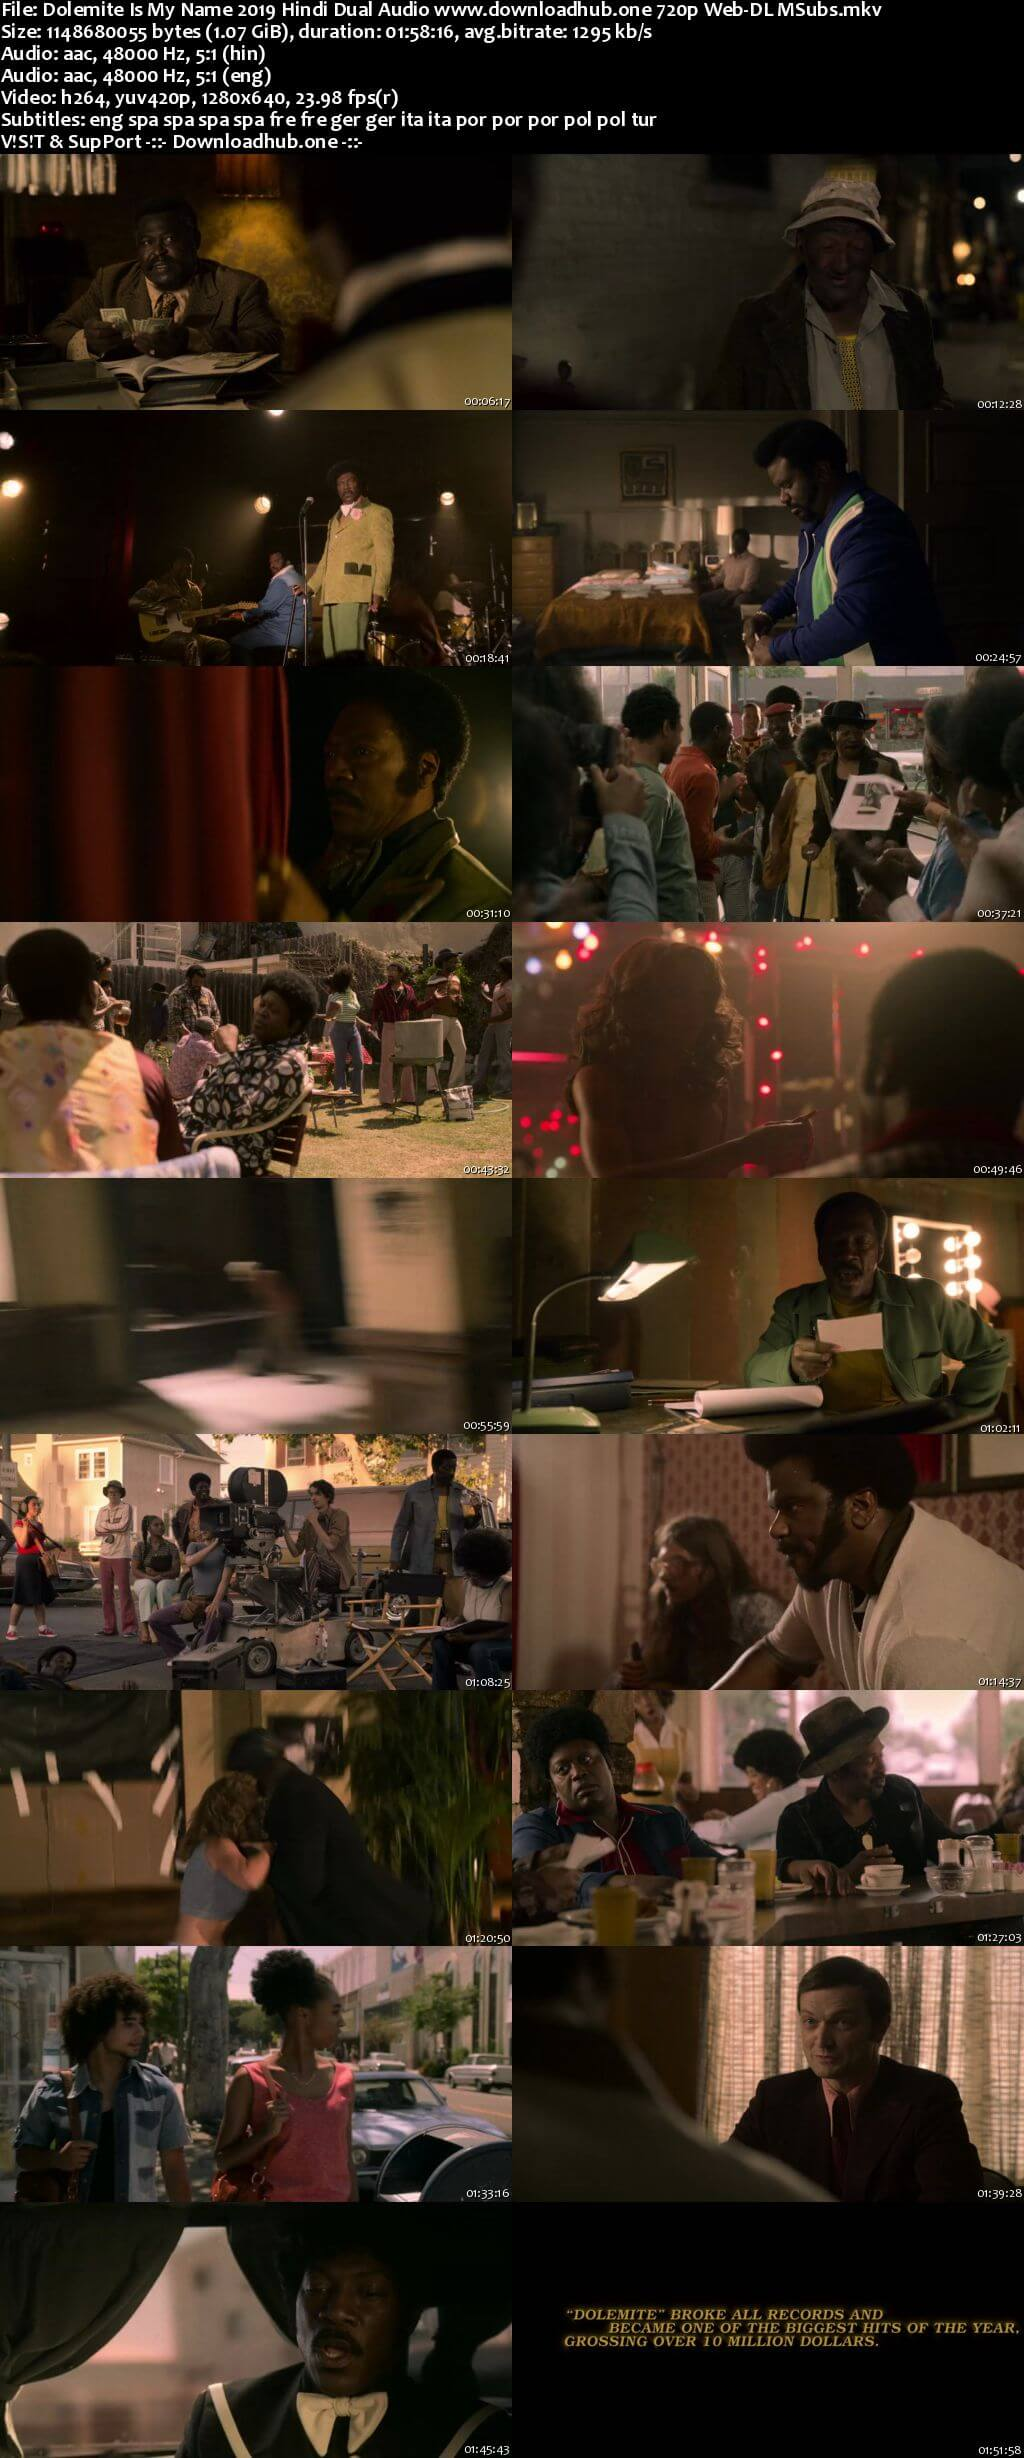 Dolemite Is My Name 2019 Hindi Dual Audio 720p Web-DL MSubs